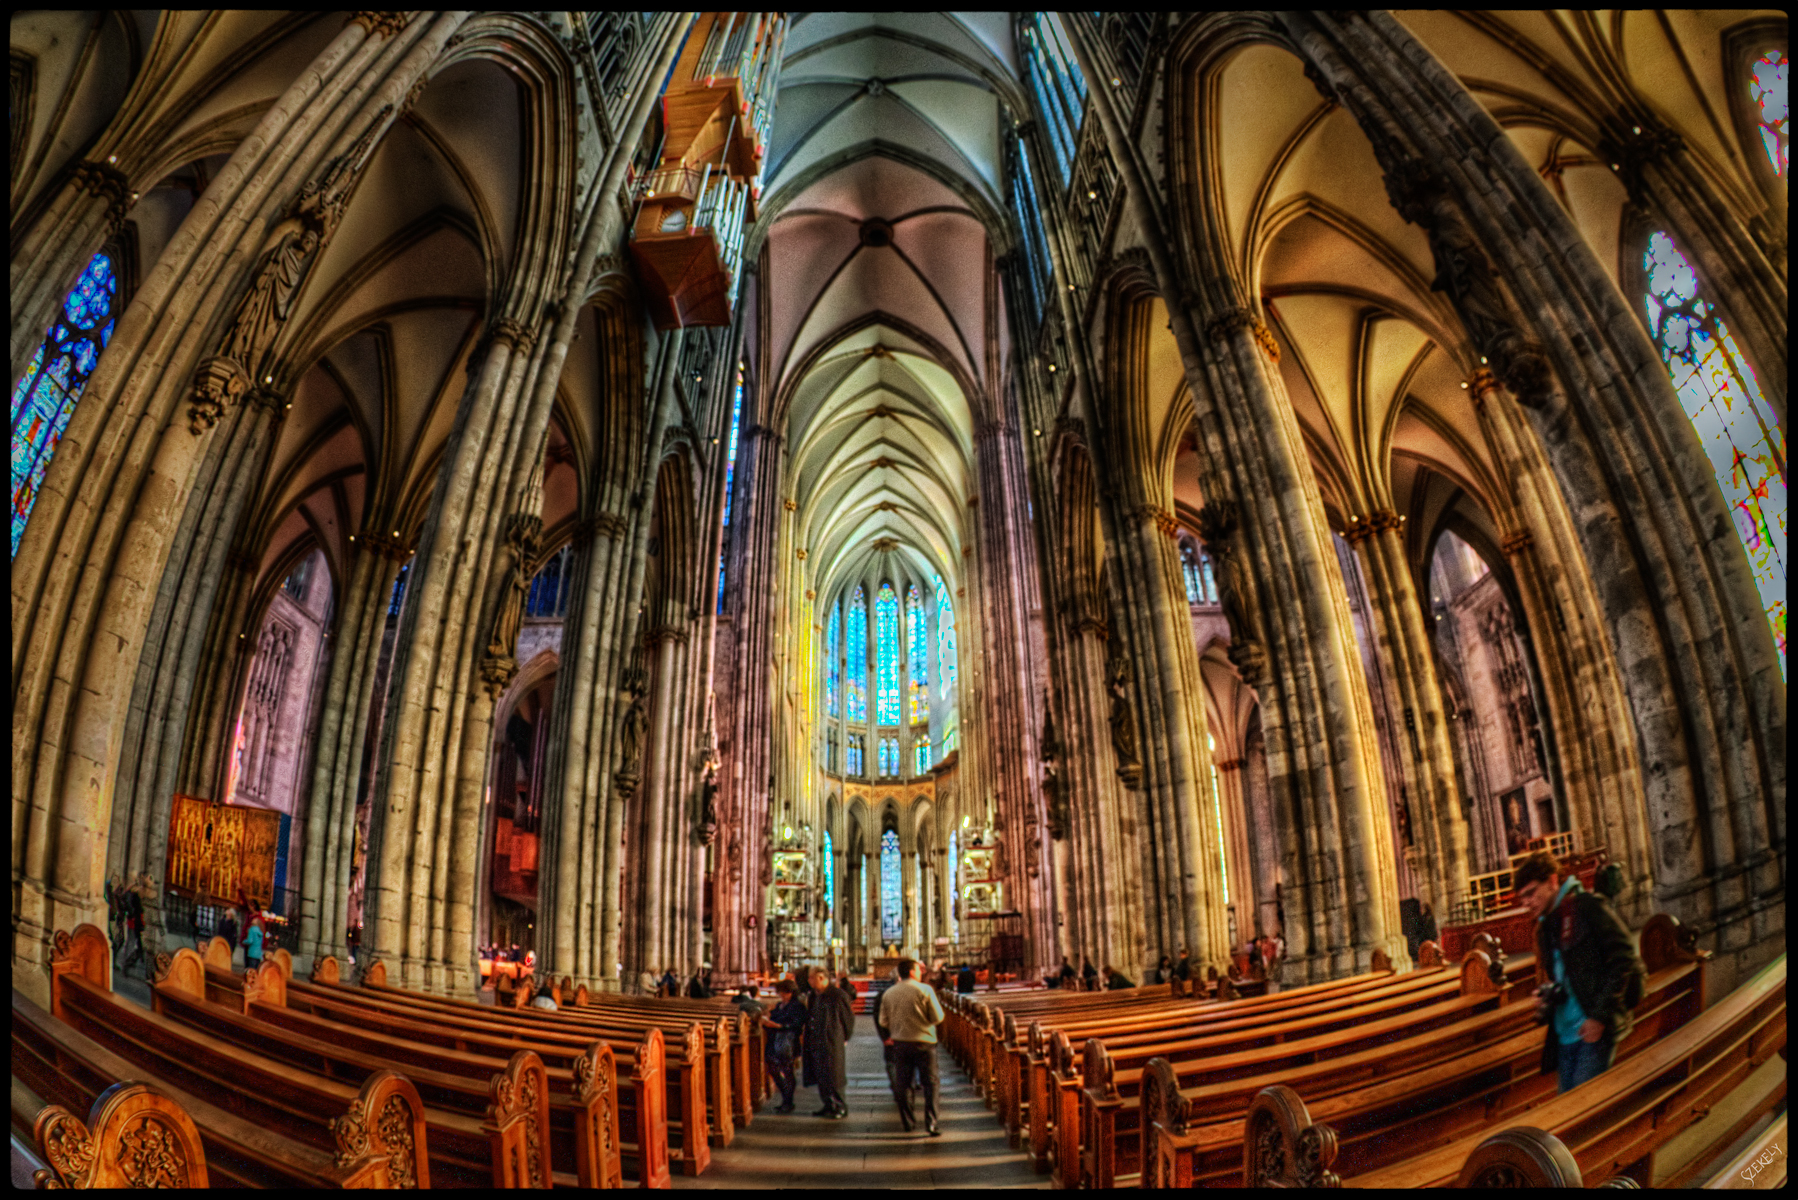 Cologne cathedral a beautiful gothic world heritage site for Interior site